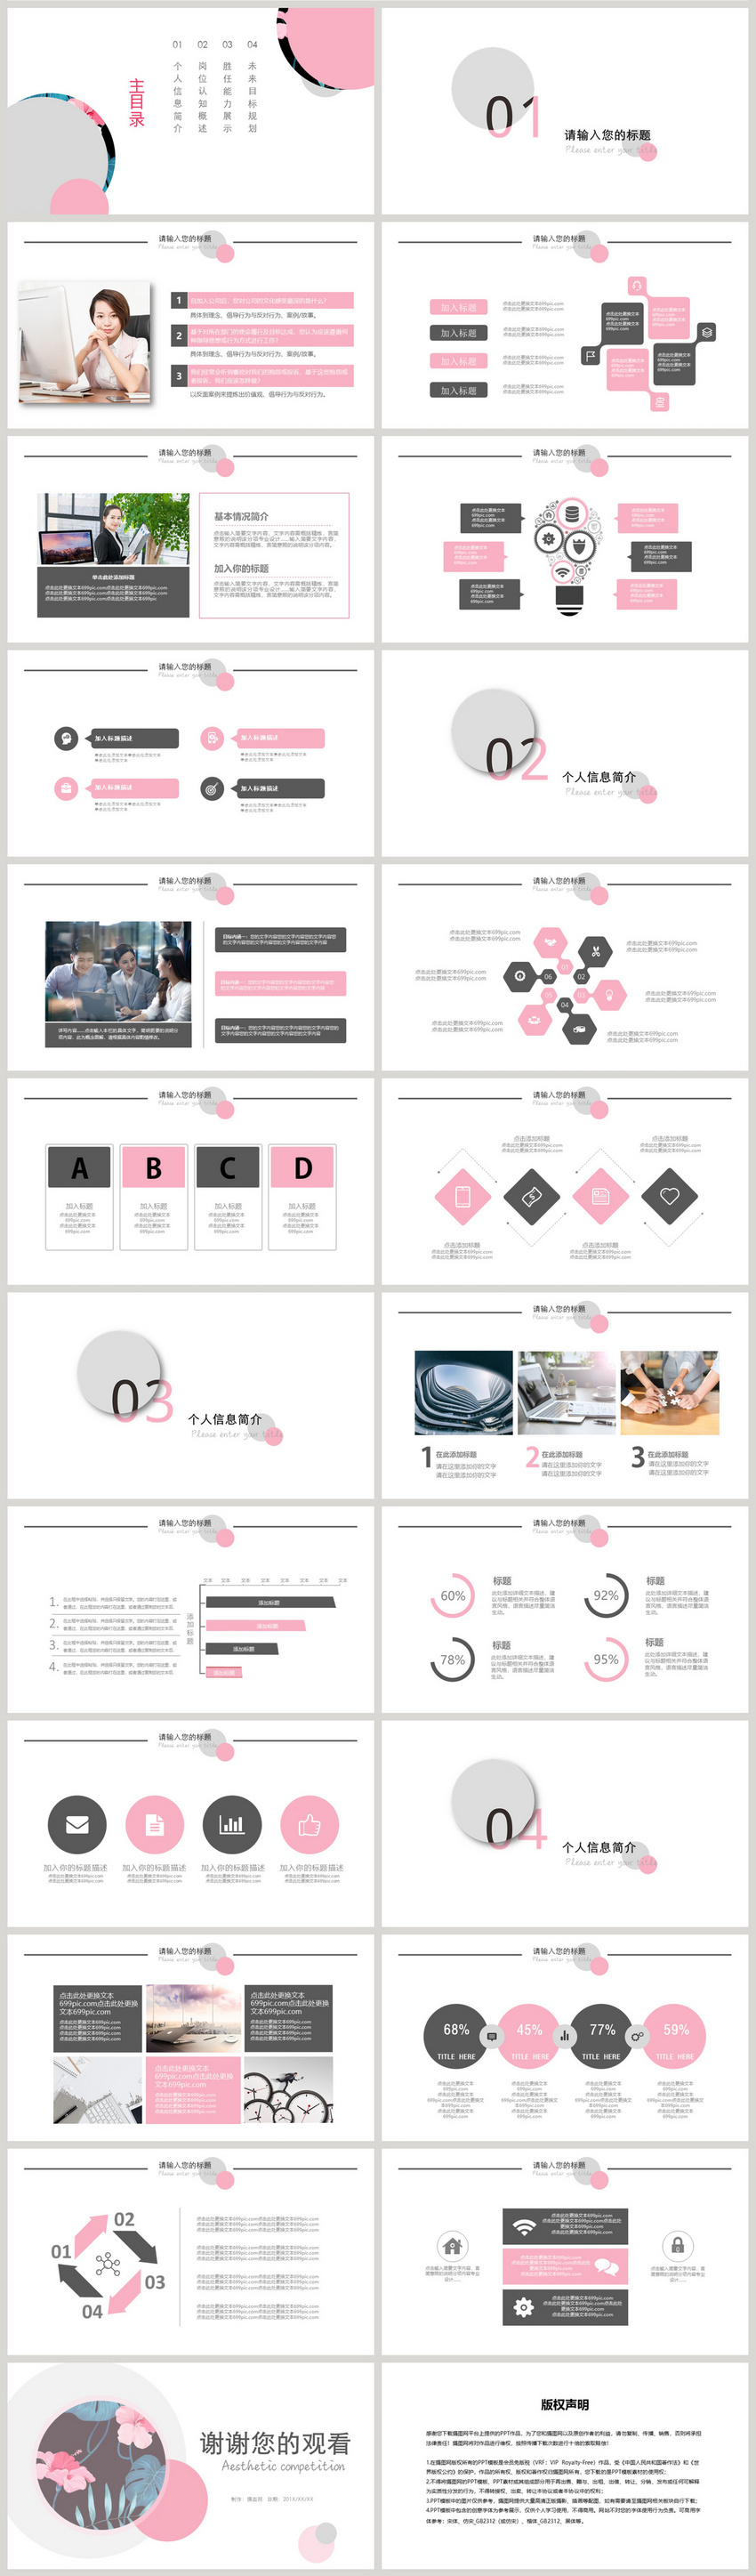 Simple And Aesthetic Competition Resume Ppt Template Powerpoint Templete Ppt Free Download 401035471 Lovepik Com